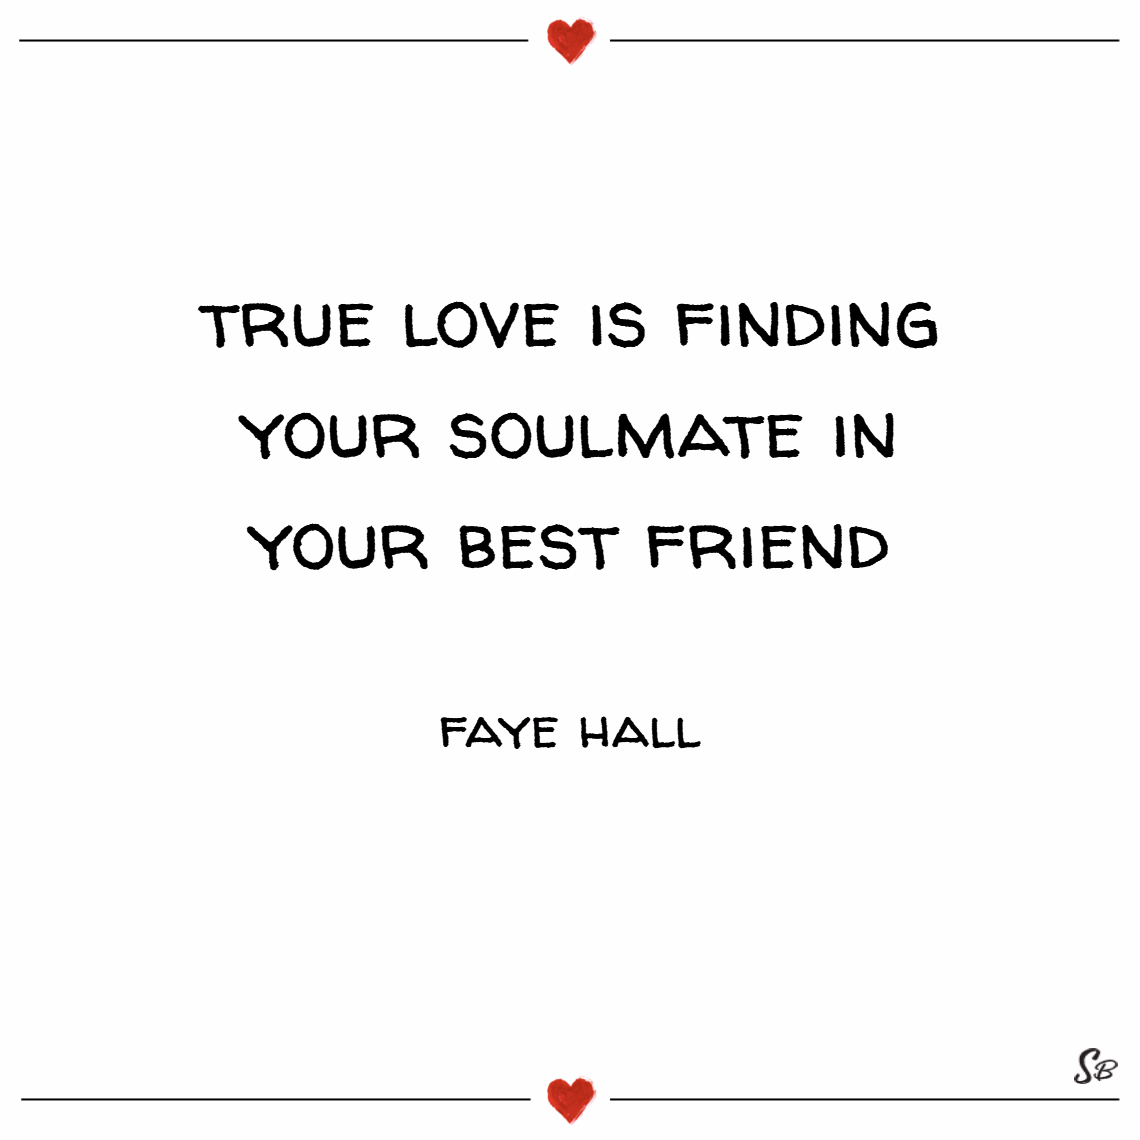 True love is finding your soulmate in your best friend. – faye hall Soulmate quotes